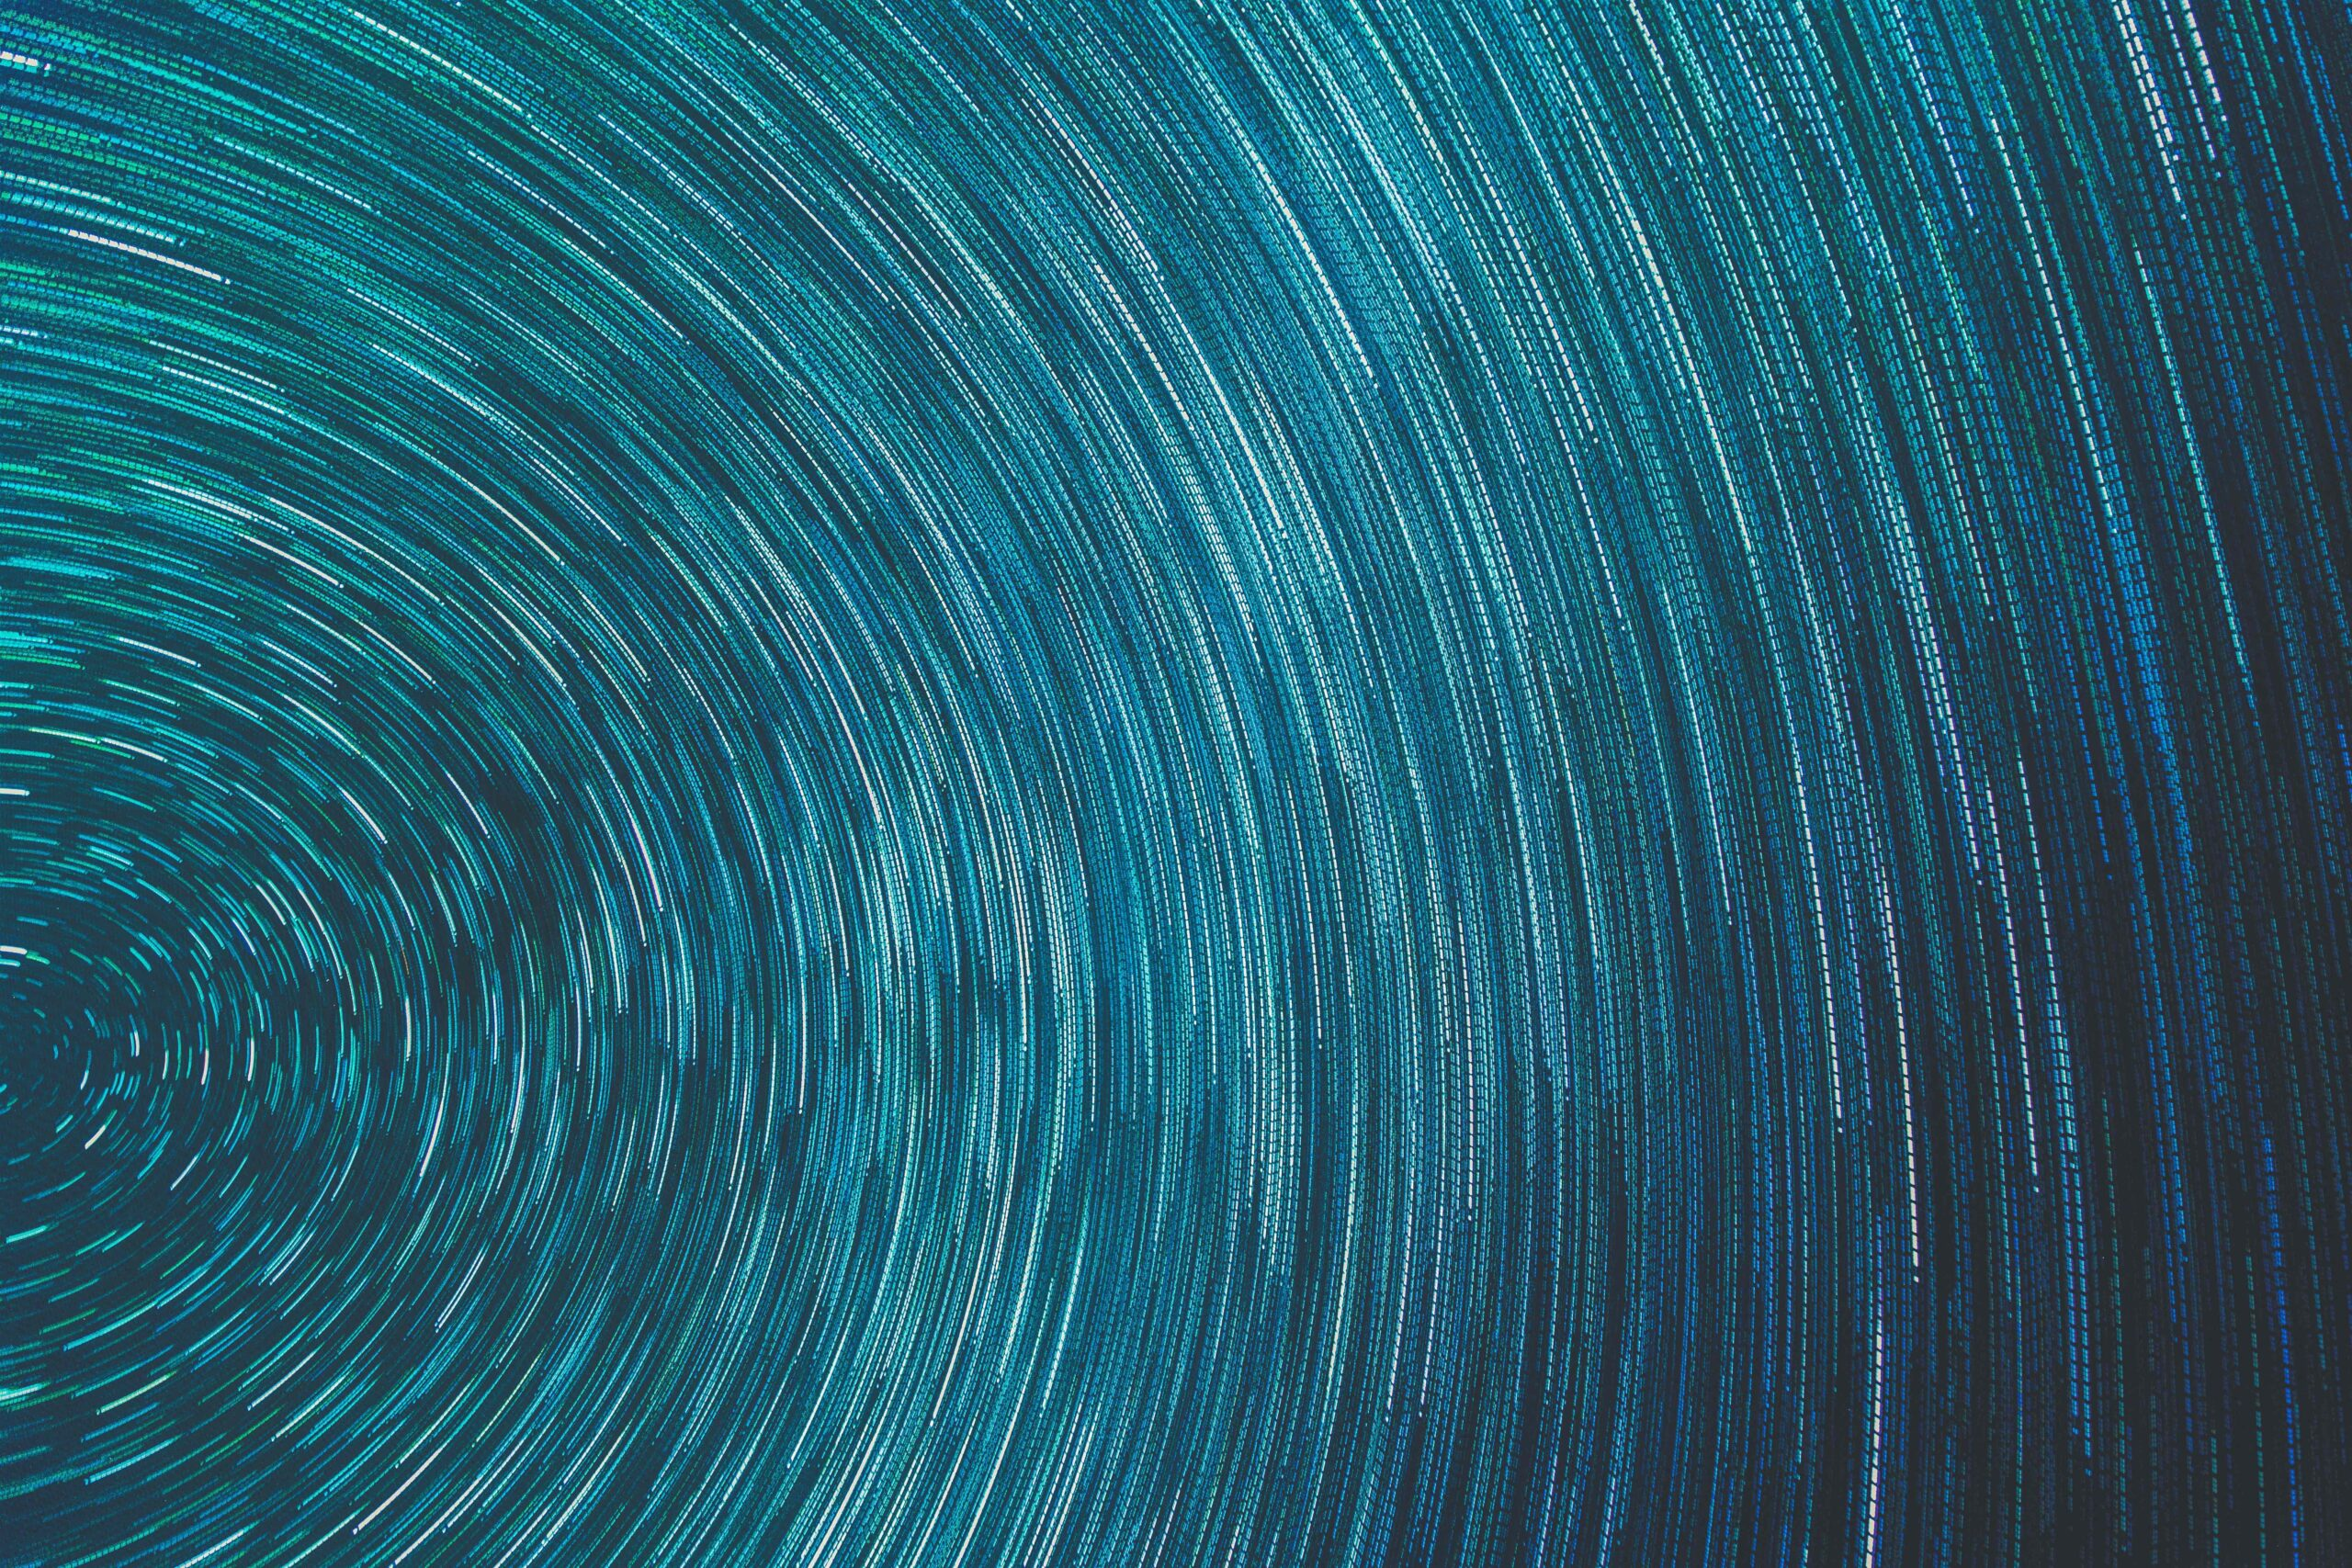 Featured Image of Blurred Stars for Blog about the power of Website Forms by Lala Projects